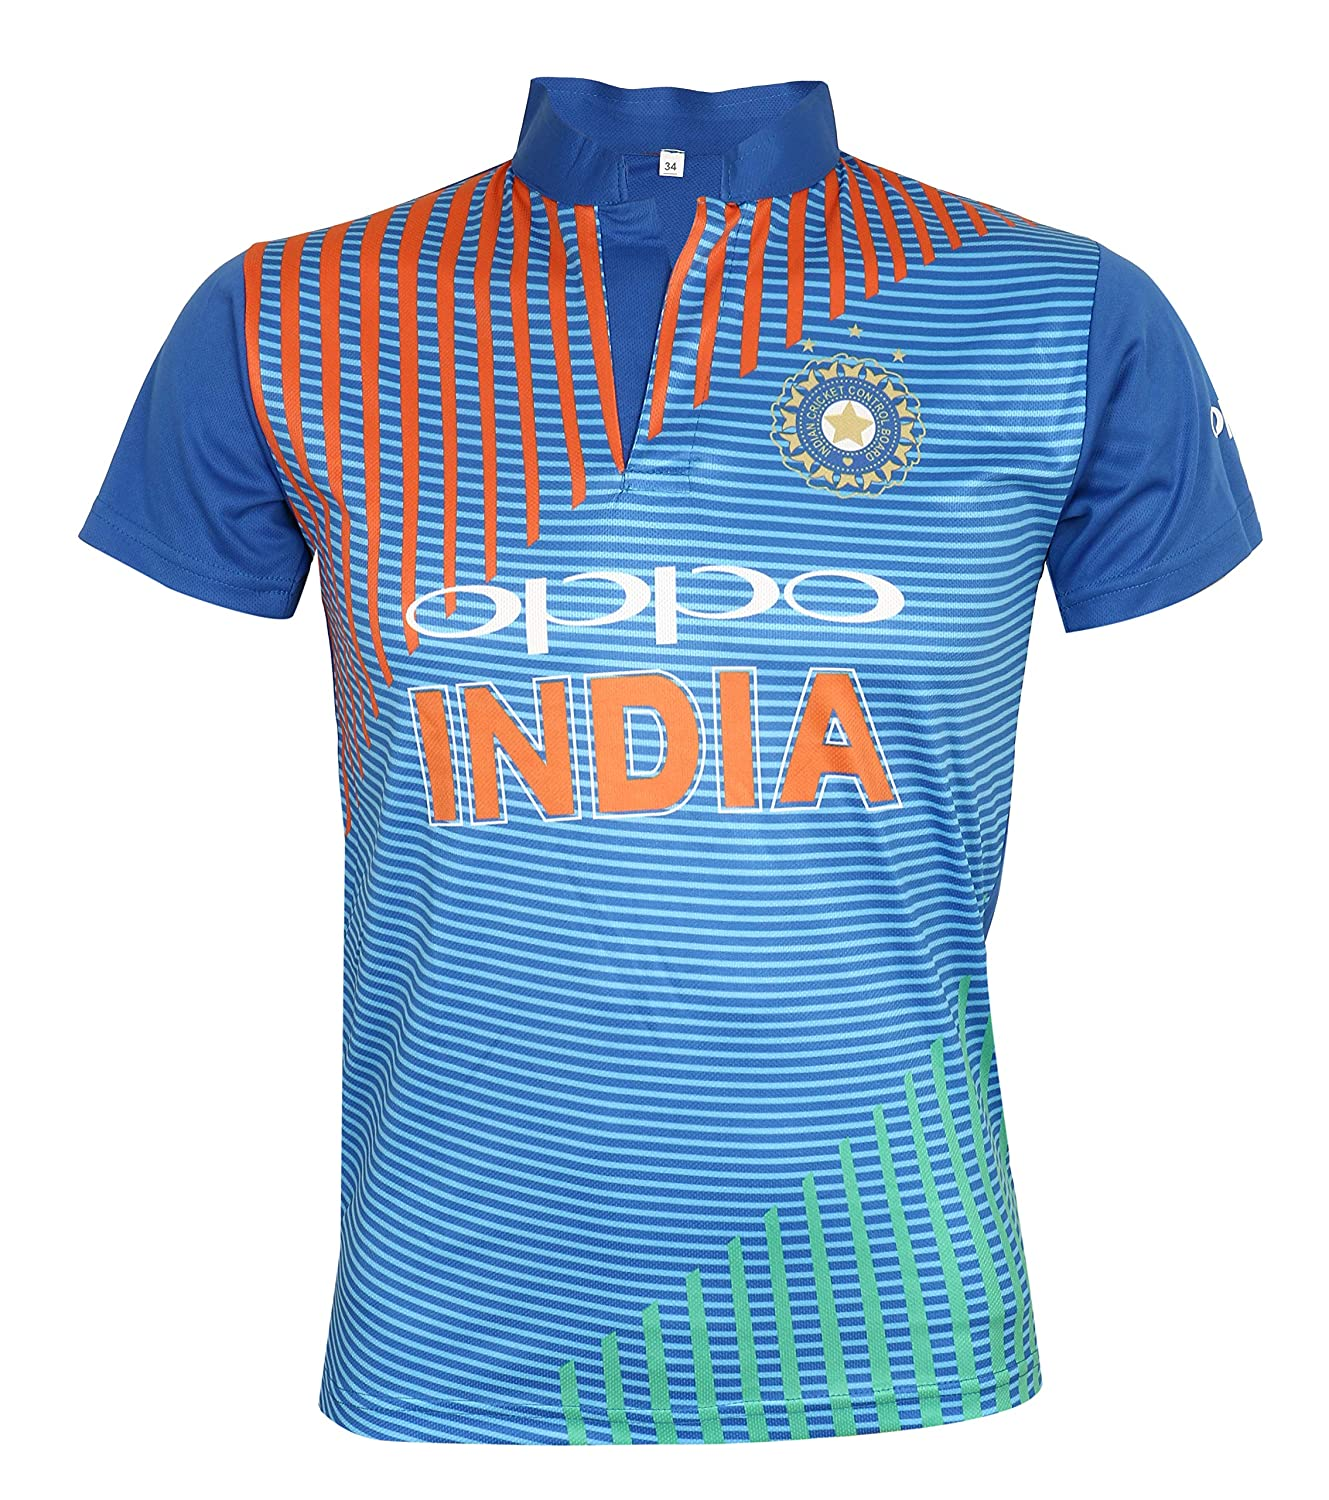 e348a4982 KD Team India T20 Cricket Supporter New Oppo Jersey 2019 Kids to Adult:  Amazon.co.uk: Sports & Outdoors